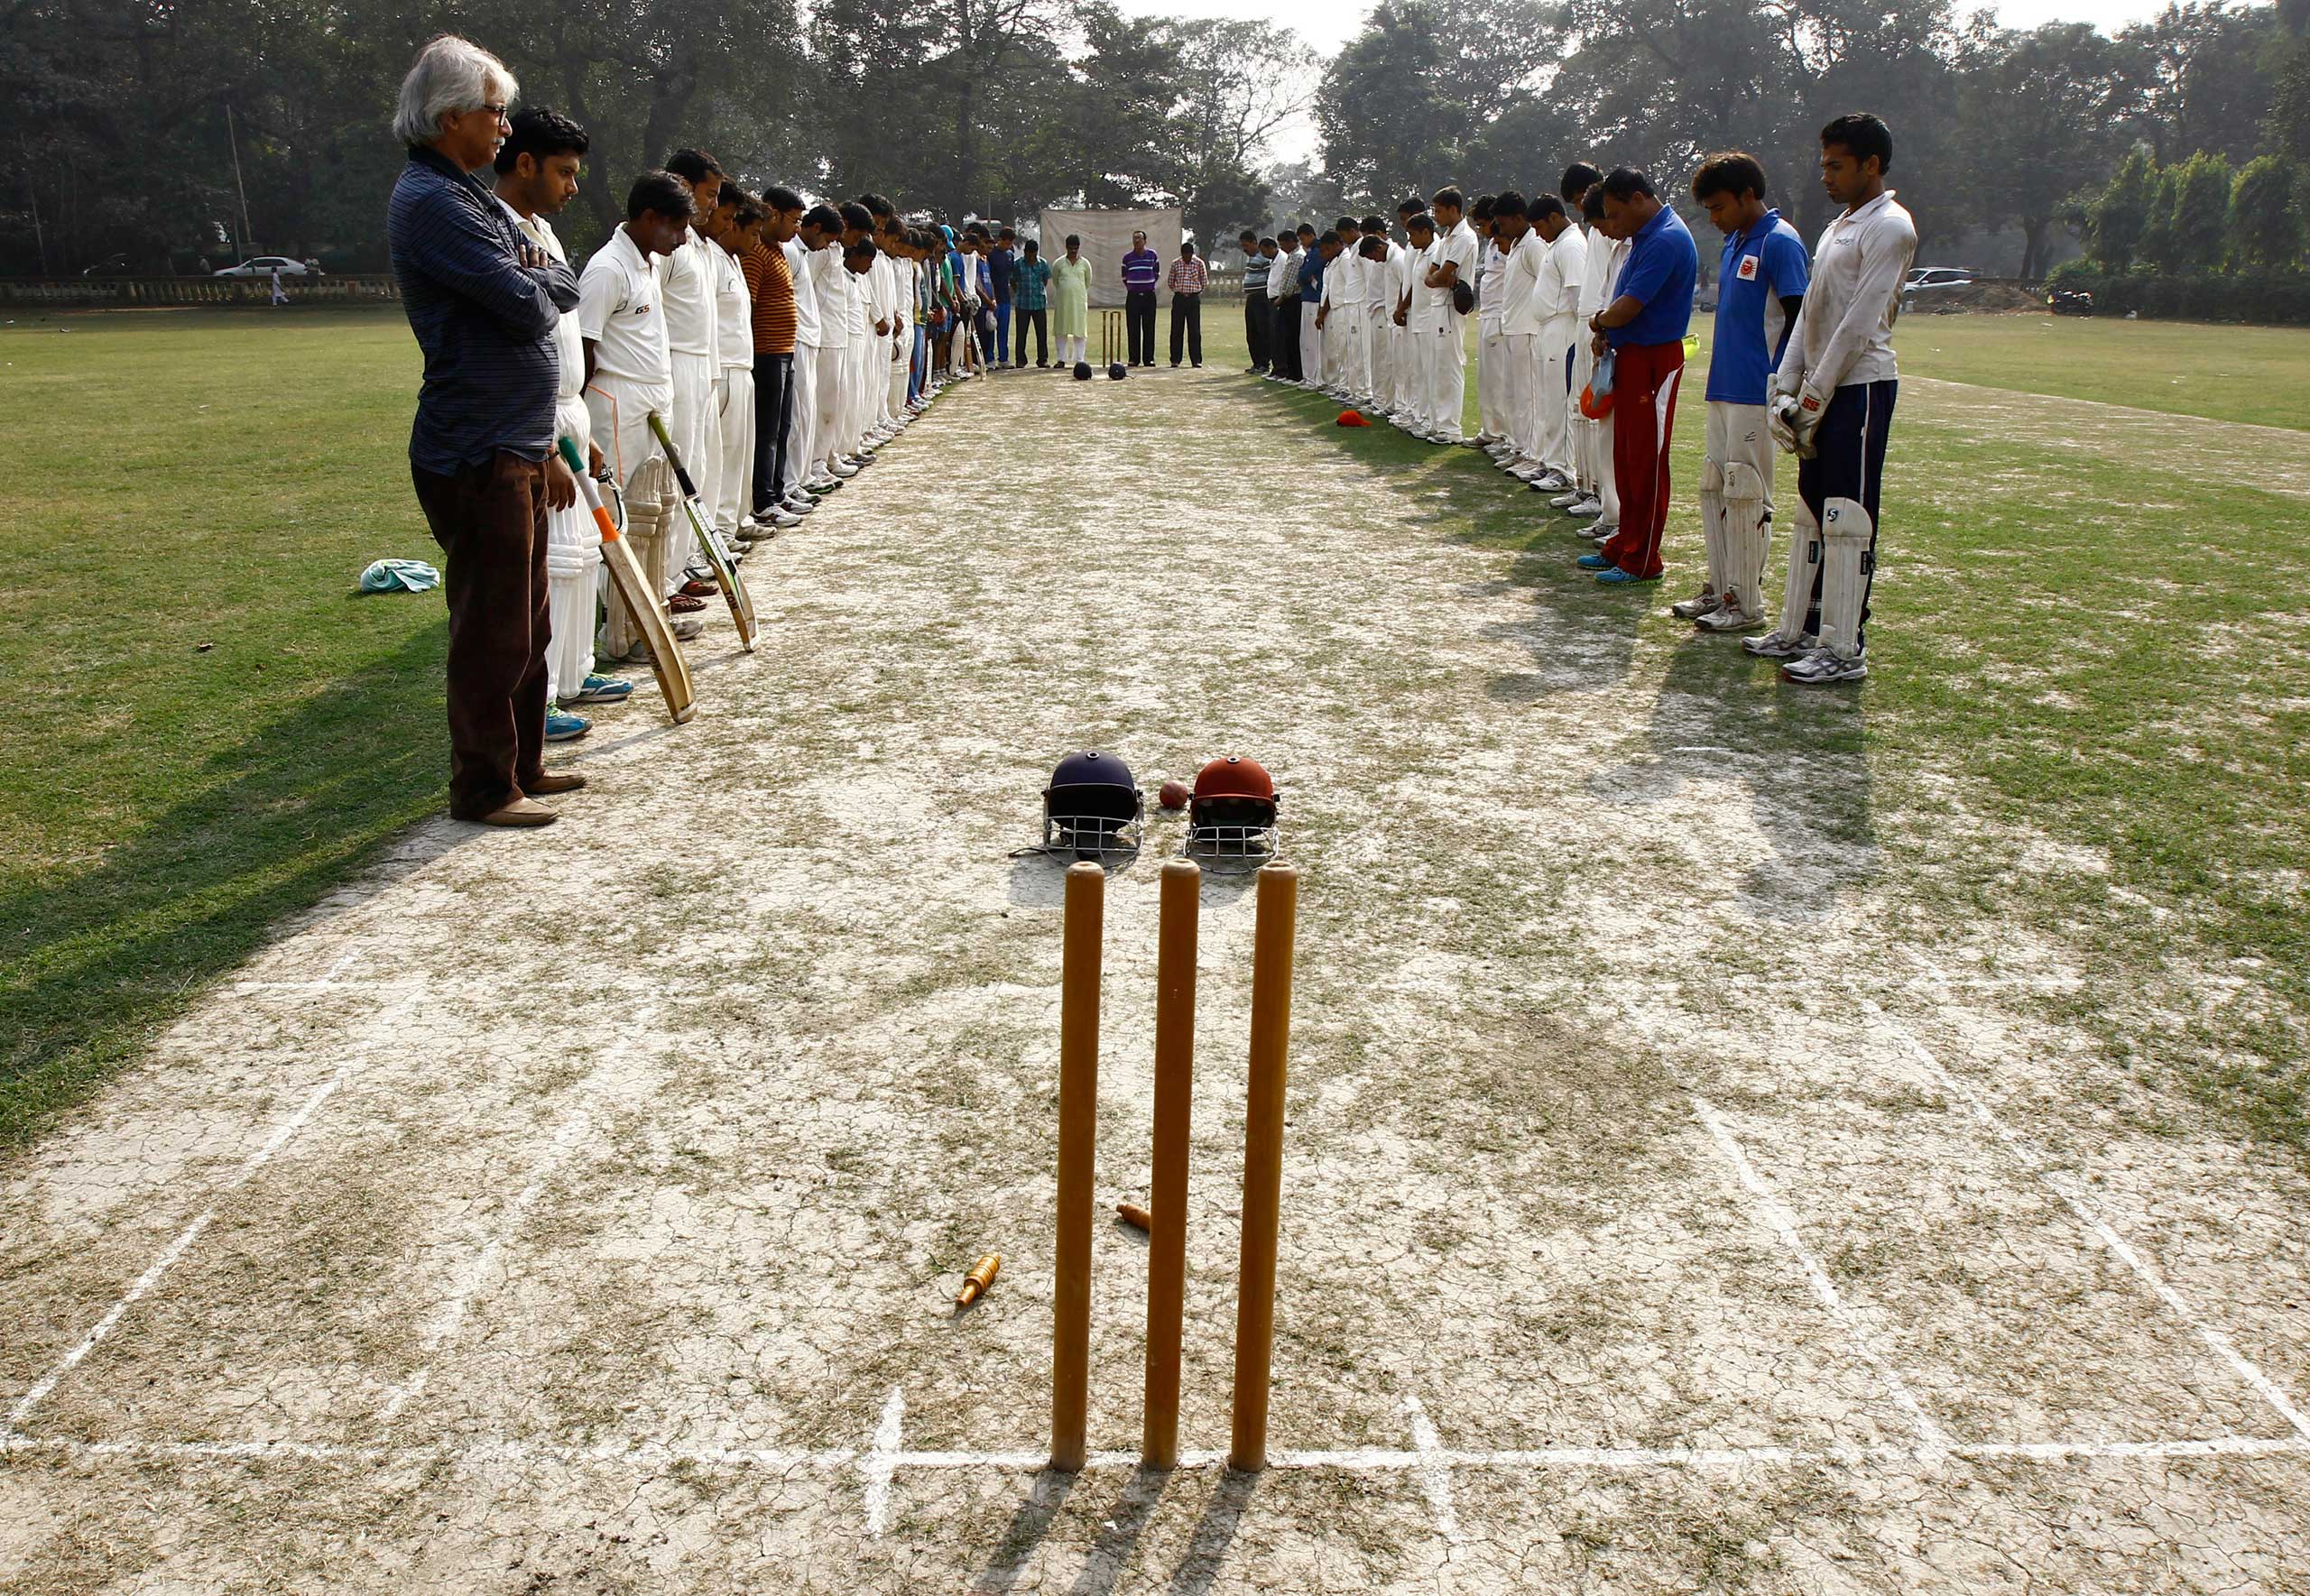 Nov. 27, 2014. Members of two local cricket teams observe a moment of silence for Australian cricketer Phillip Hughes before their match in Kolkata, India. Hughes died in a Sydney hospital, two days after being struck by a cricket ball during a match in Australia.